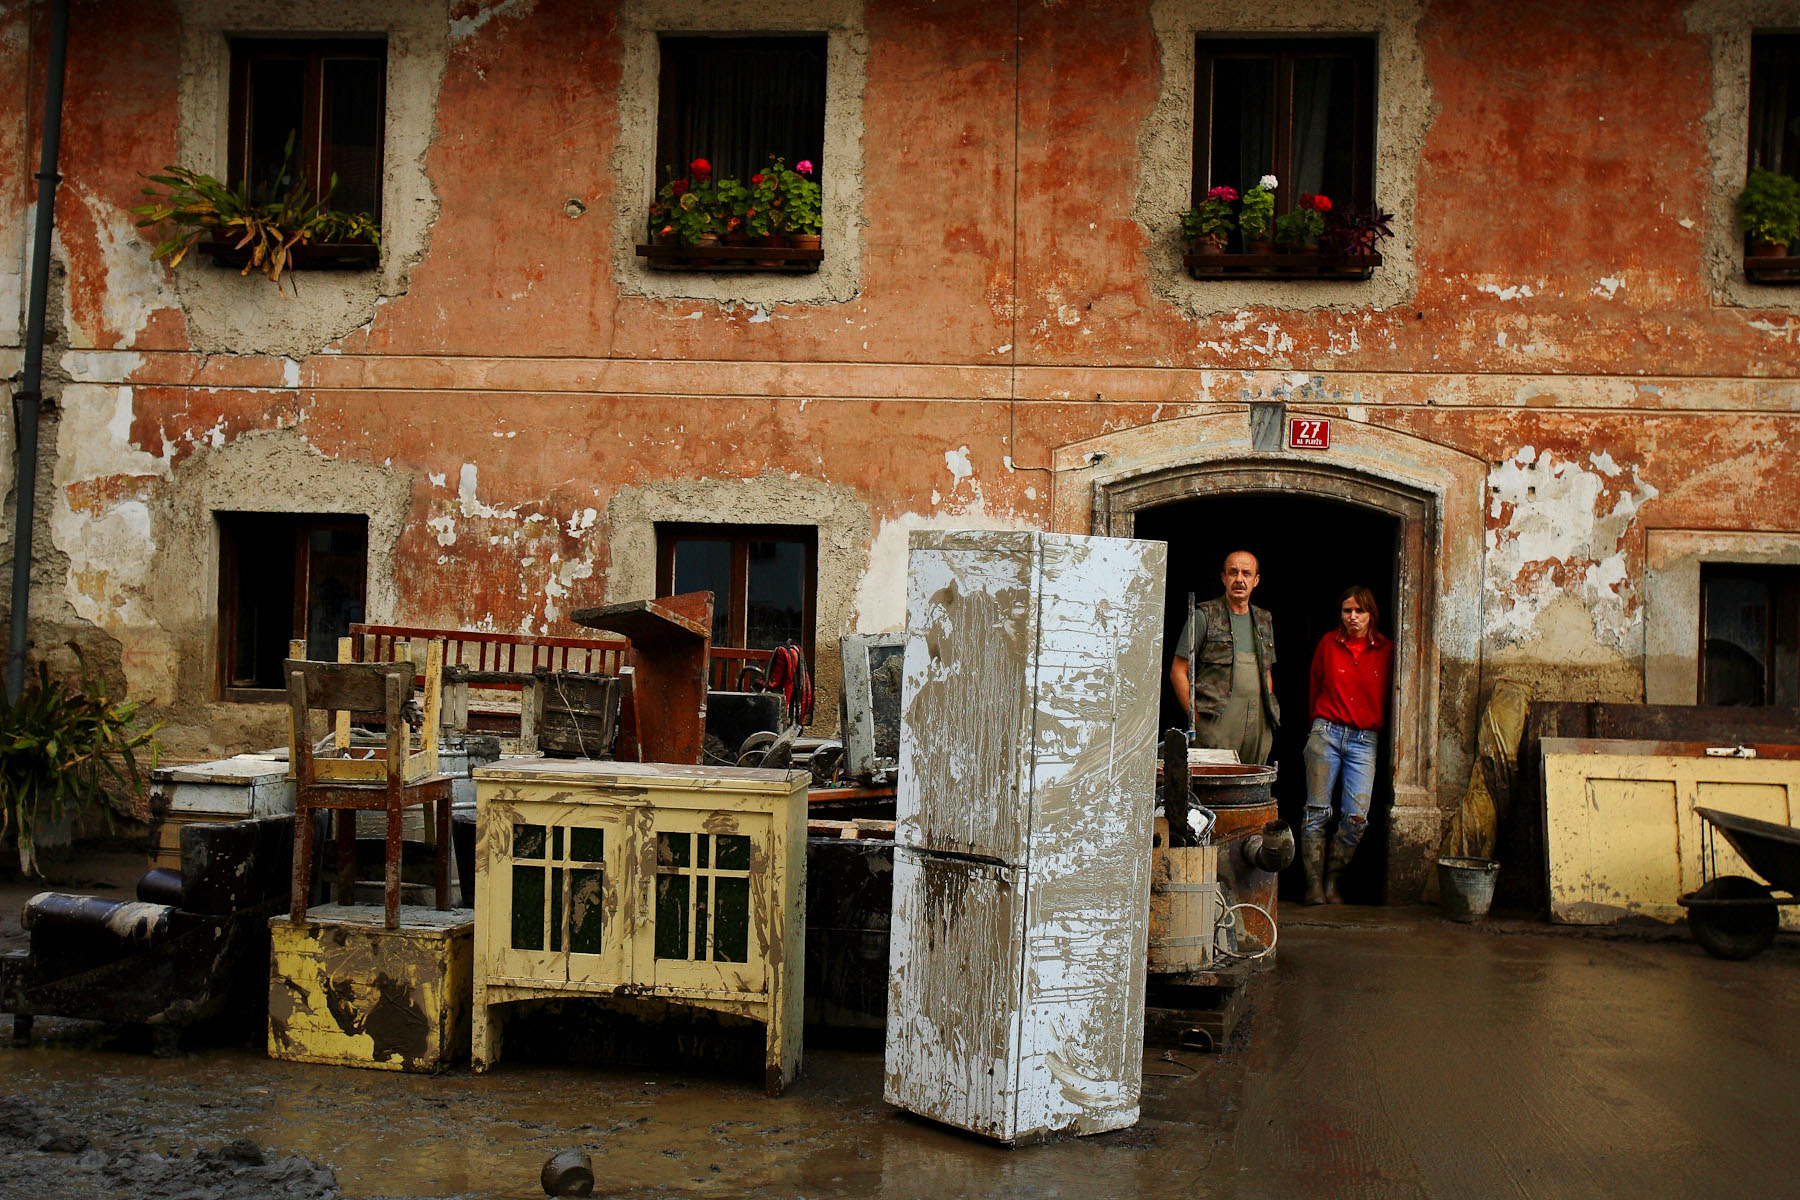 Citizens of Železniki clean up their houses after a devestating flash flood the day before.